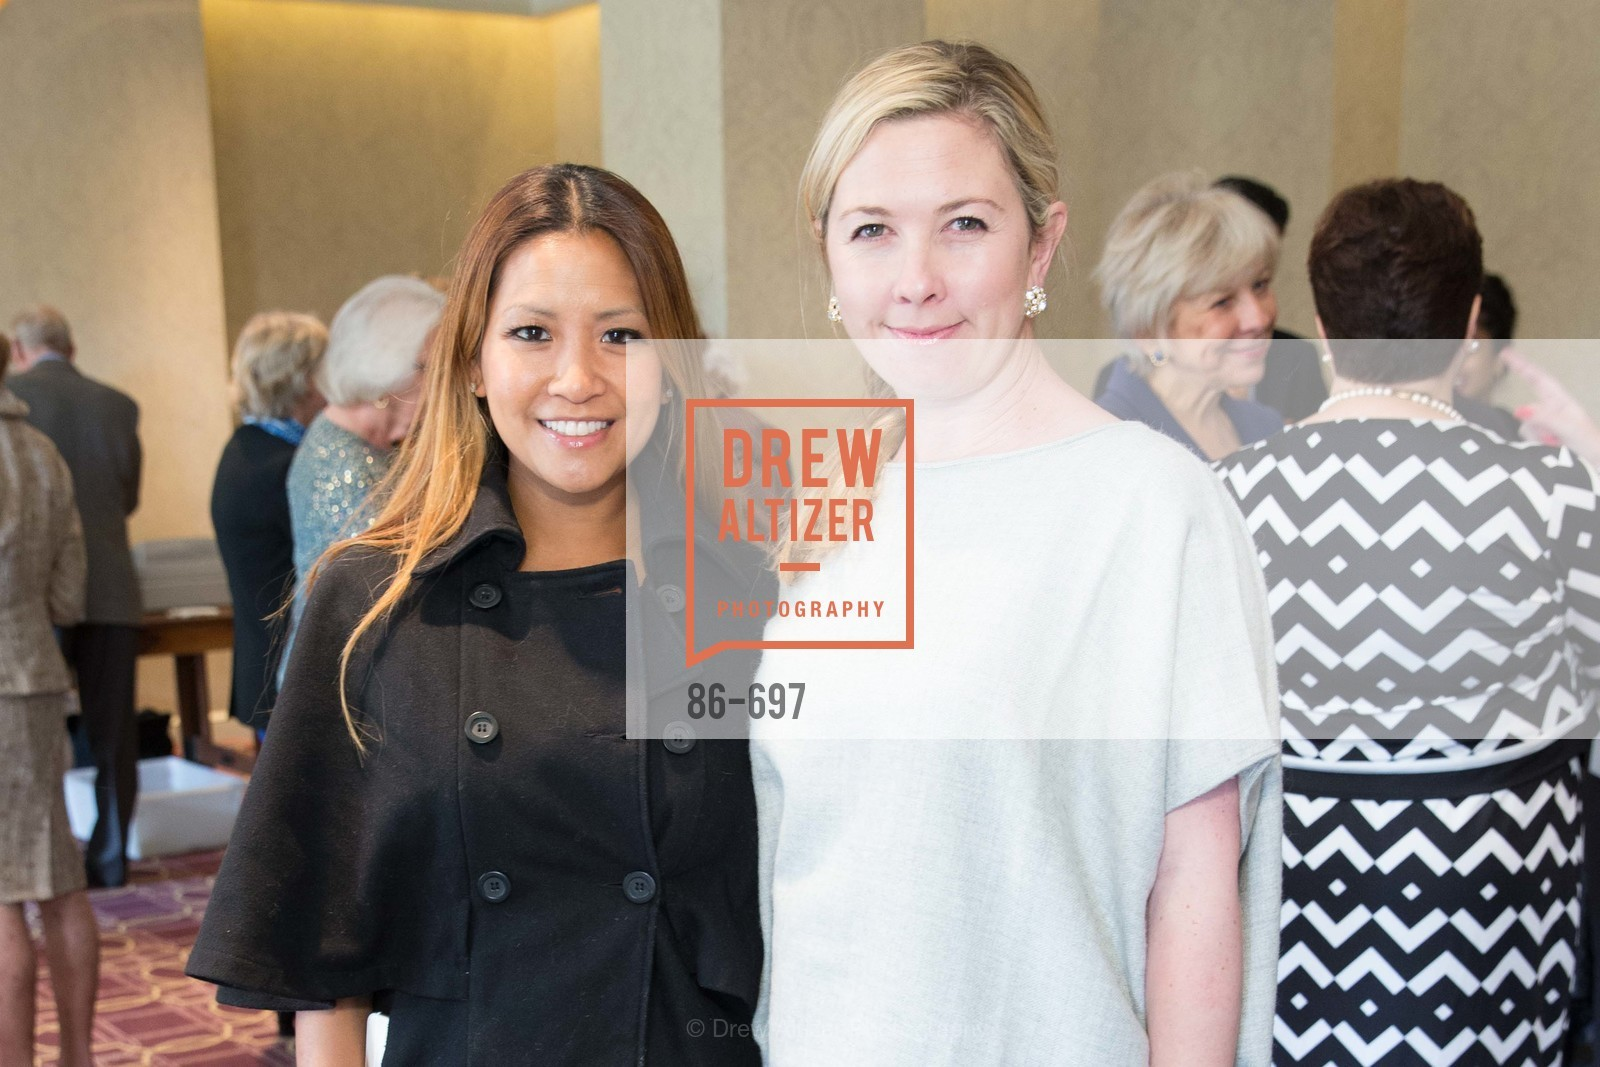 Lillian Phan, Michelle Harris, JUNIOR LEAGUE OF SAN FRANCISCO's WATCH Luncheon, US, May 4th, 2015,Drew Altizer, Drew Altizer Photography, full-service agency, private events, San Francisco photographer, photographer california